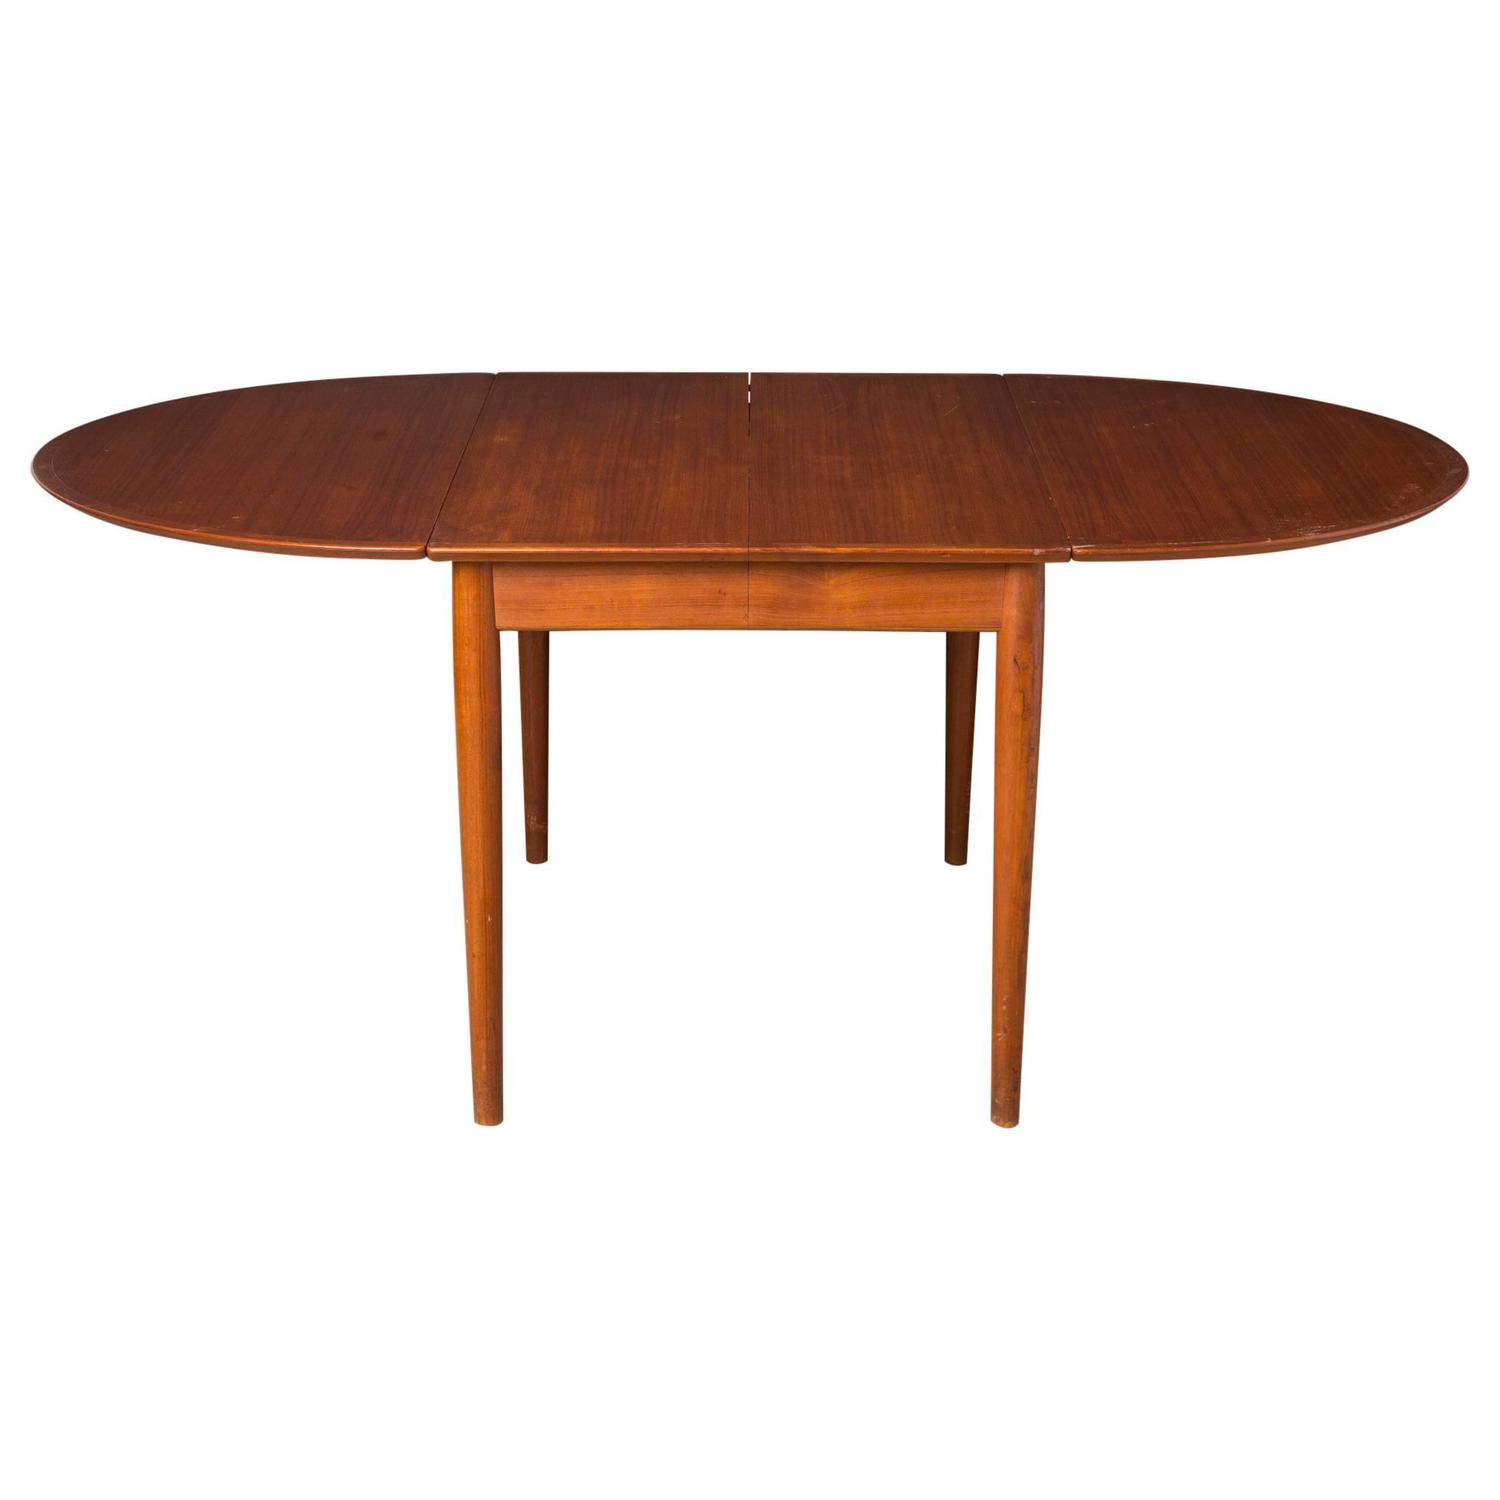 Arne vodder for sibast expandable dining or game table for Dining room game table